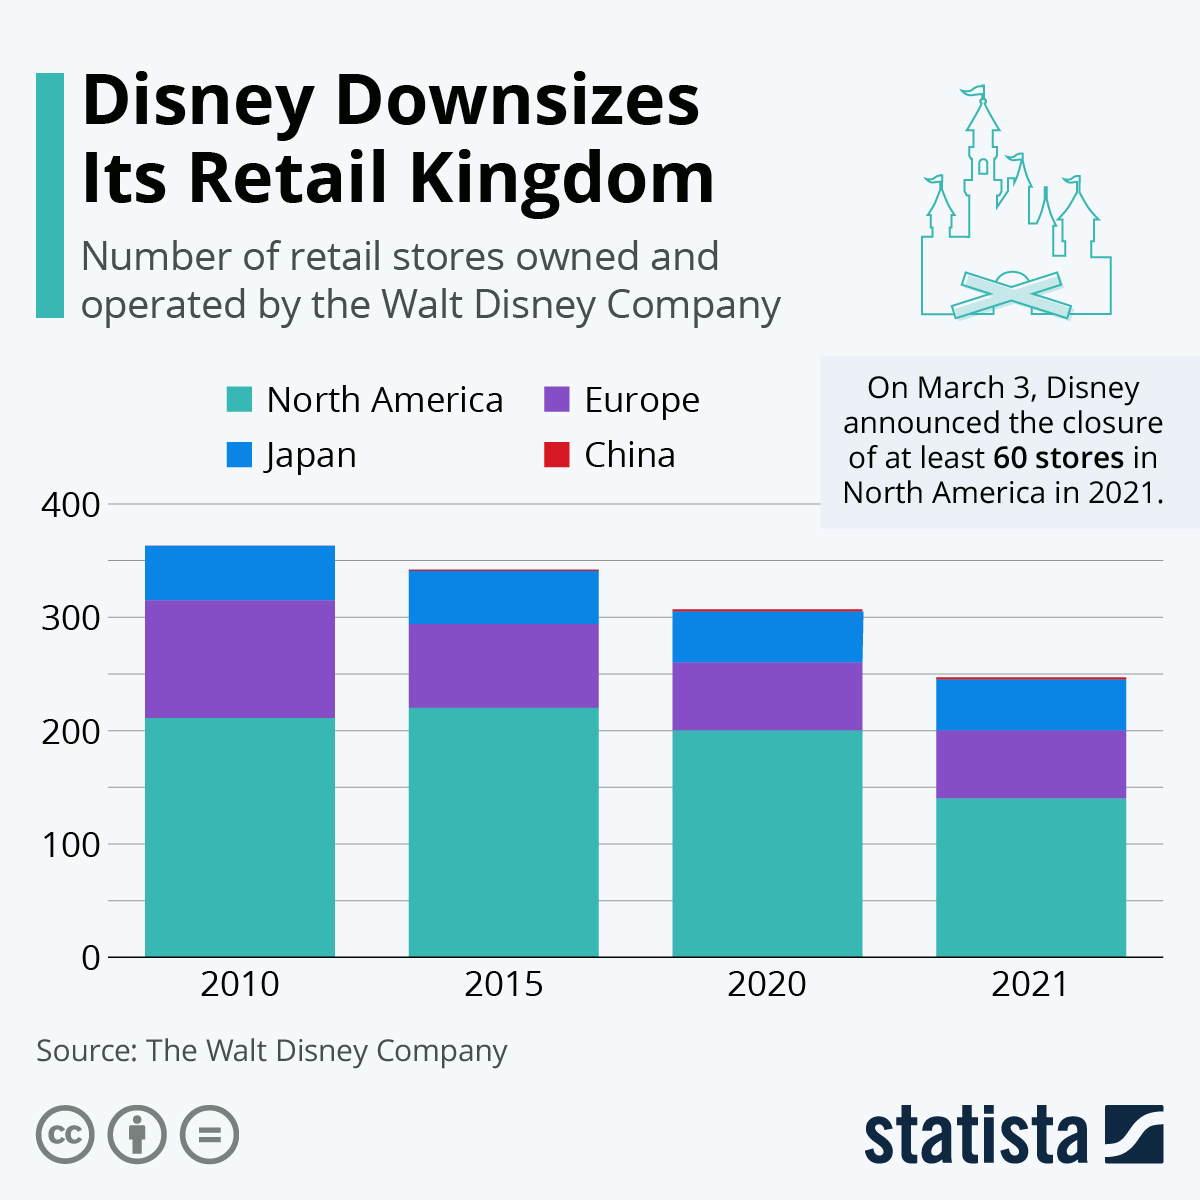 Disney decreases its number of retail stores